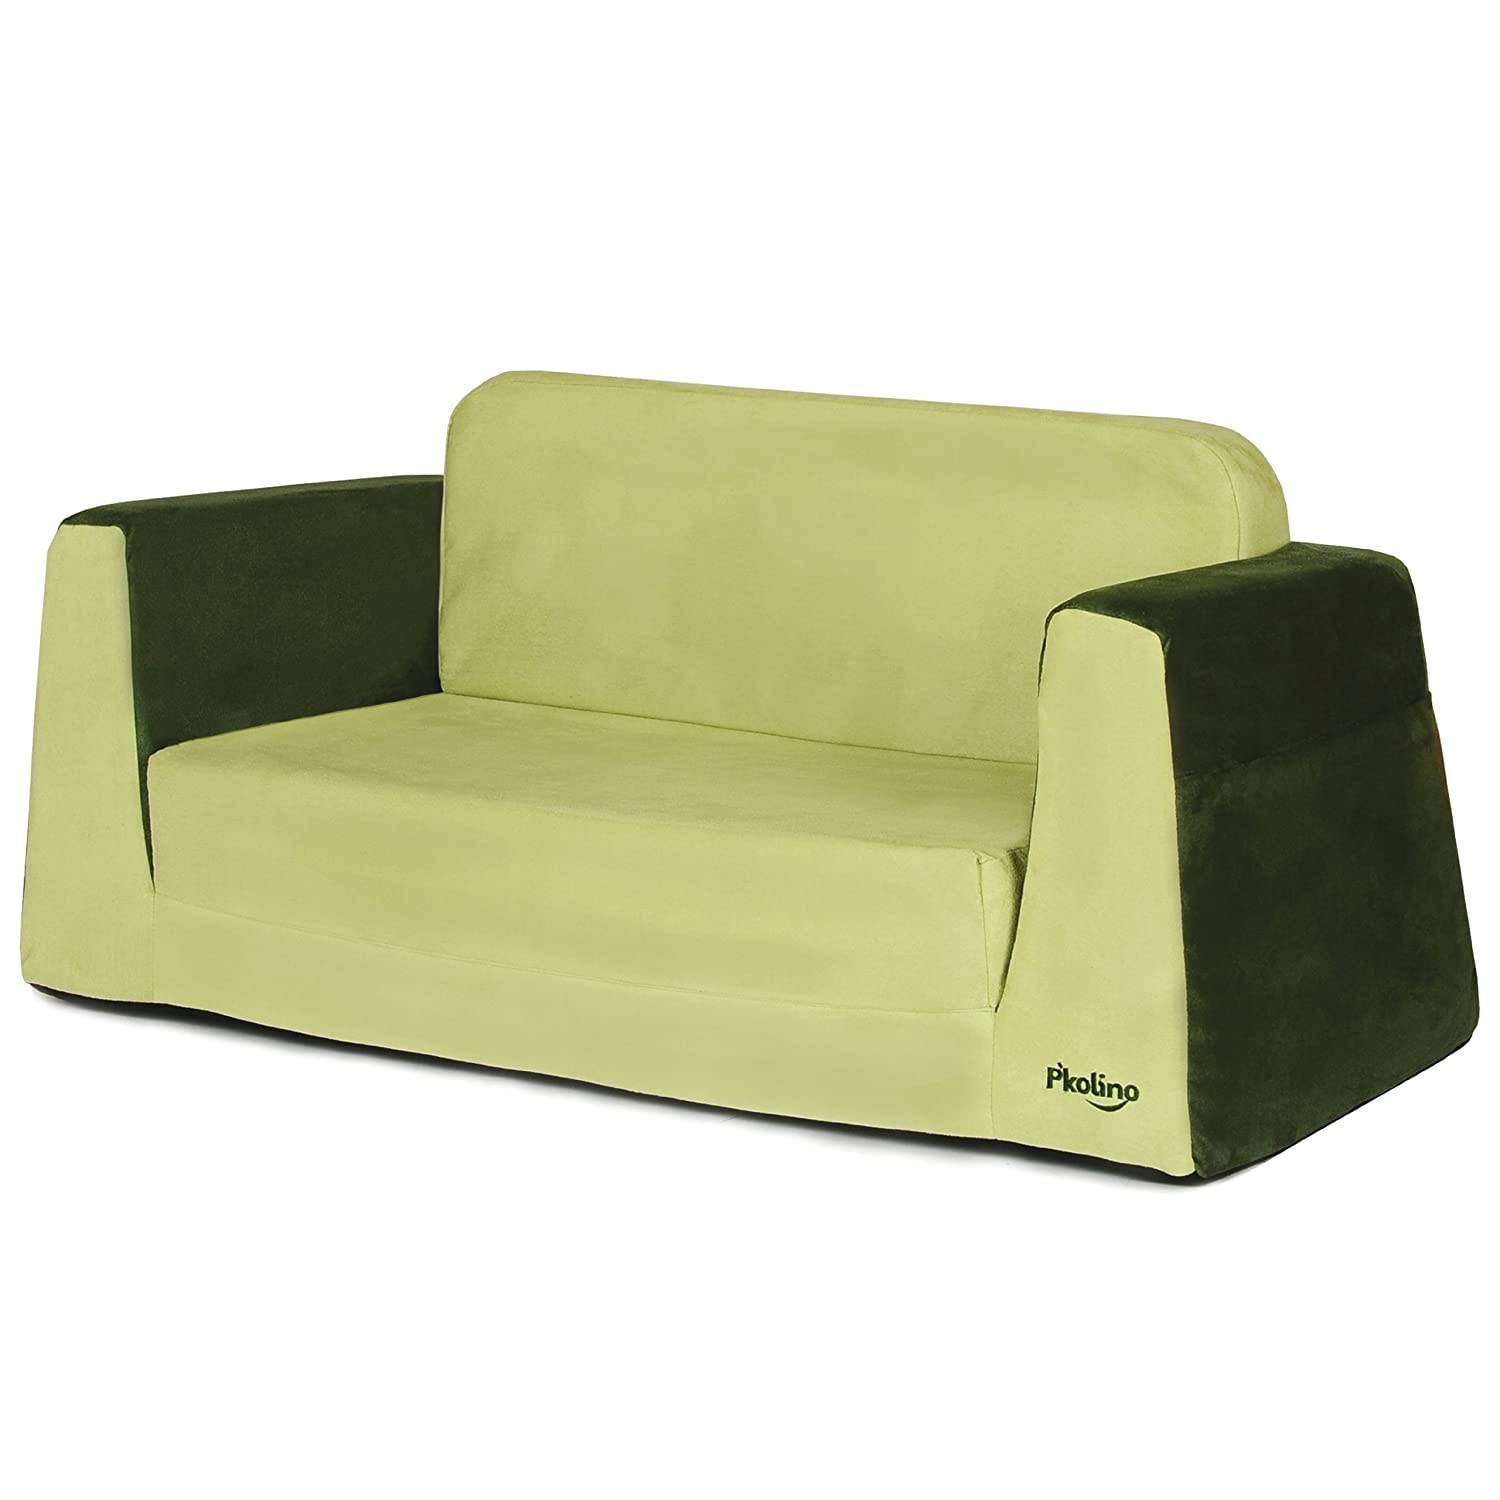 Amazon P Kolino Little Sofa Lounge Green Discontinued by